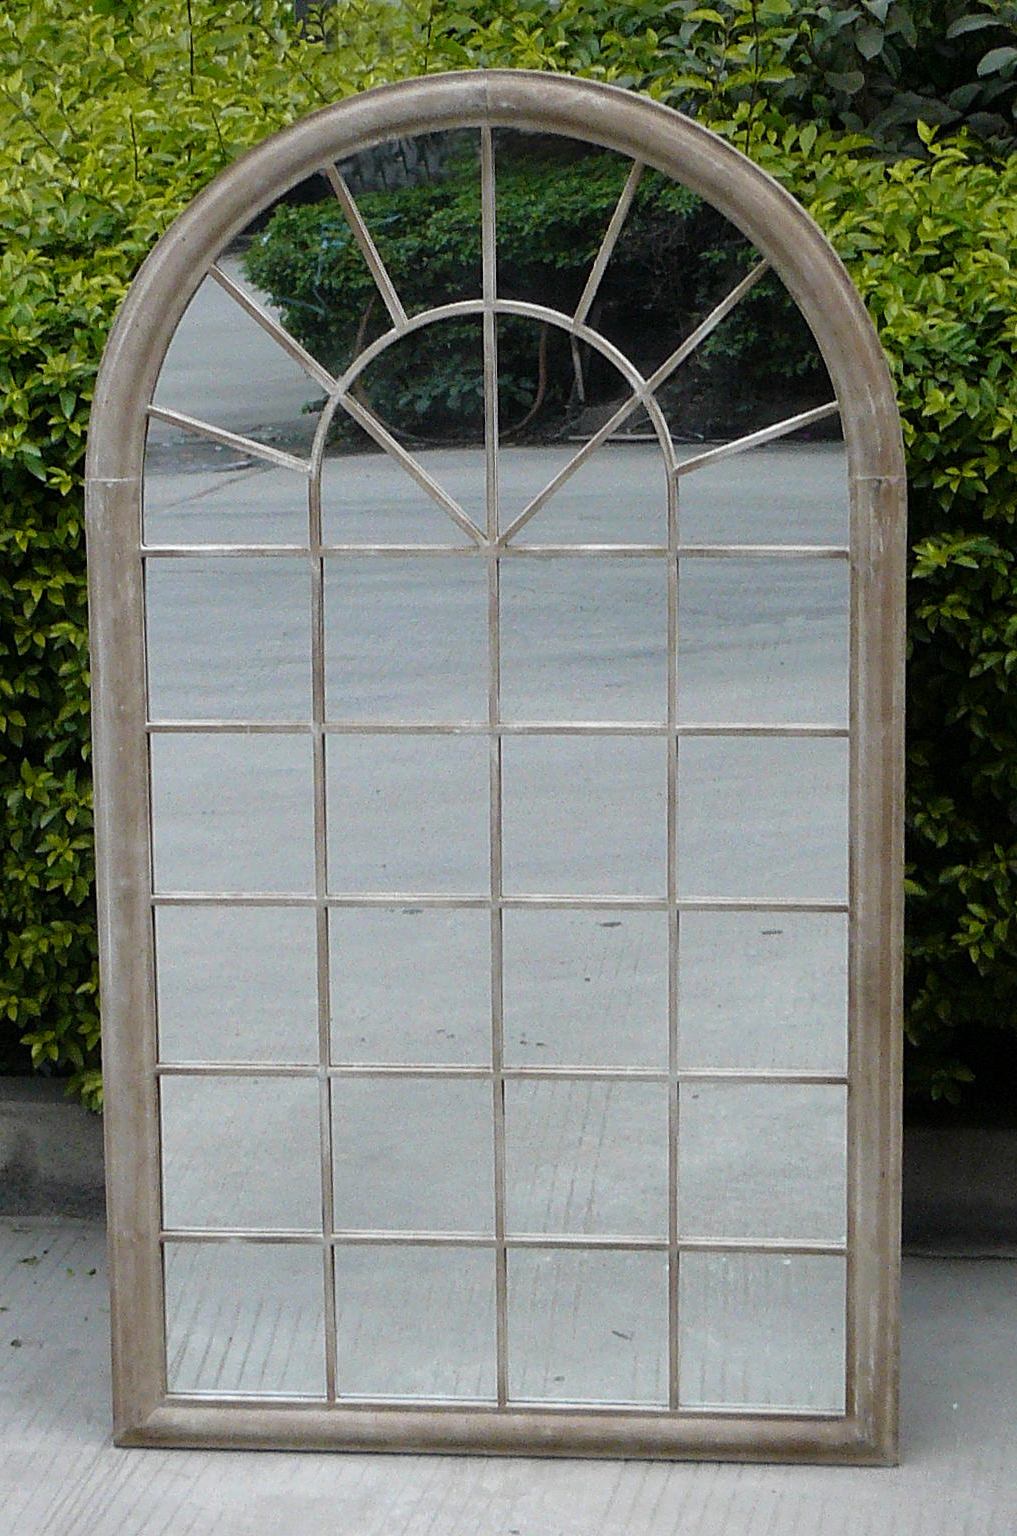 Outdoor Garden Wall Mirrors Within Preferred New Outdoor Garden Wall Mirrors Large Plaques Art Ideas (View 8 of 20)